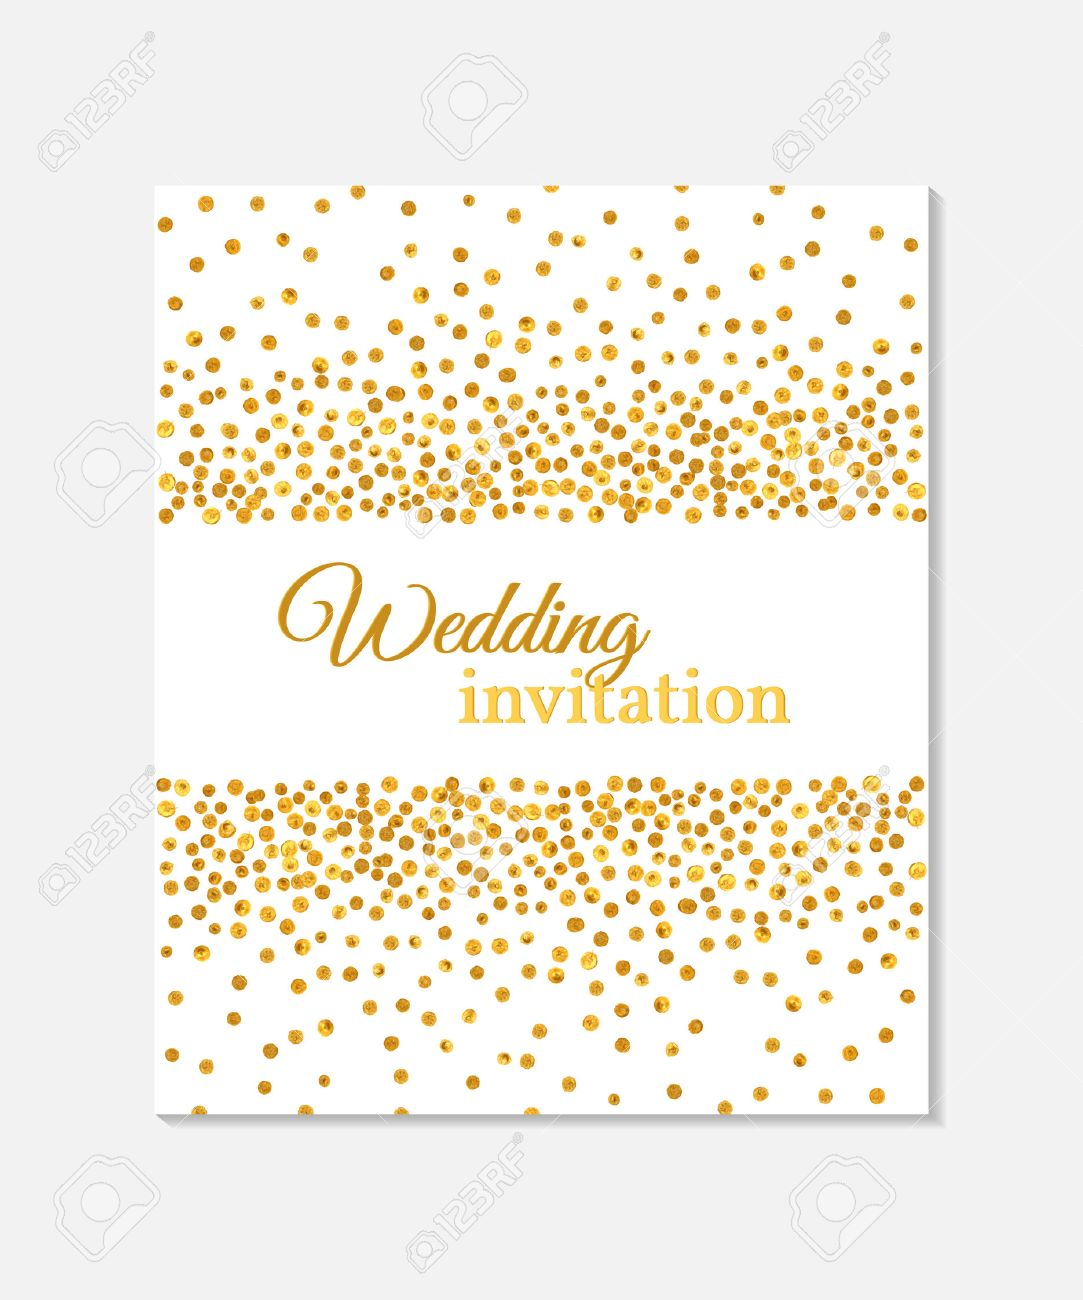 Wedding invitation card with falling golden dots on white background. Vector template. You can use it for invitation, flyer, postcard, greeting card, banner etc. - 51907028